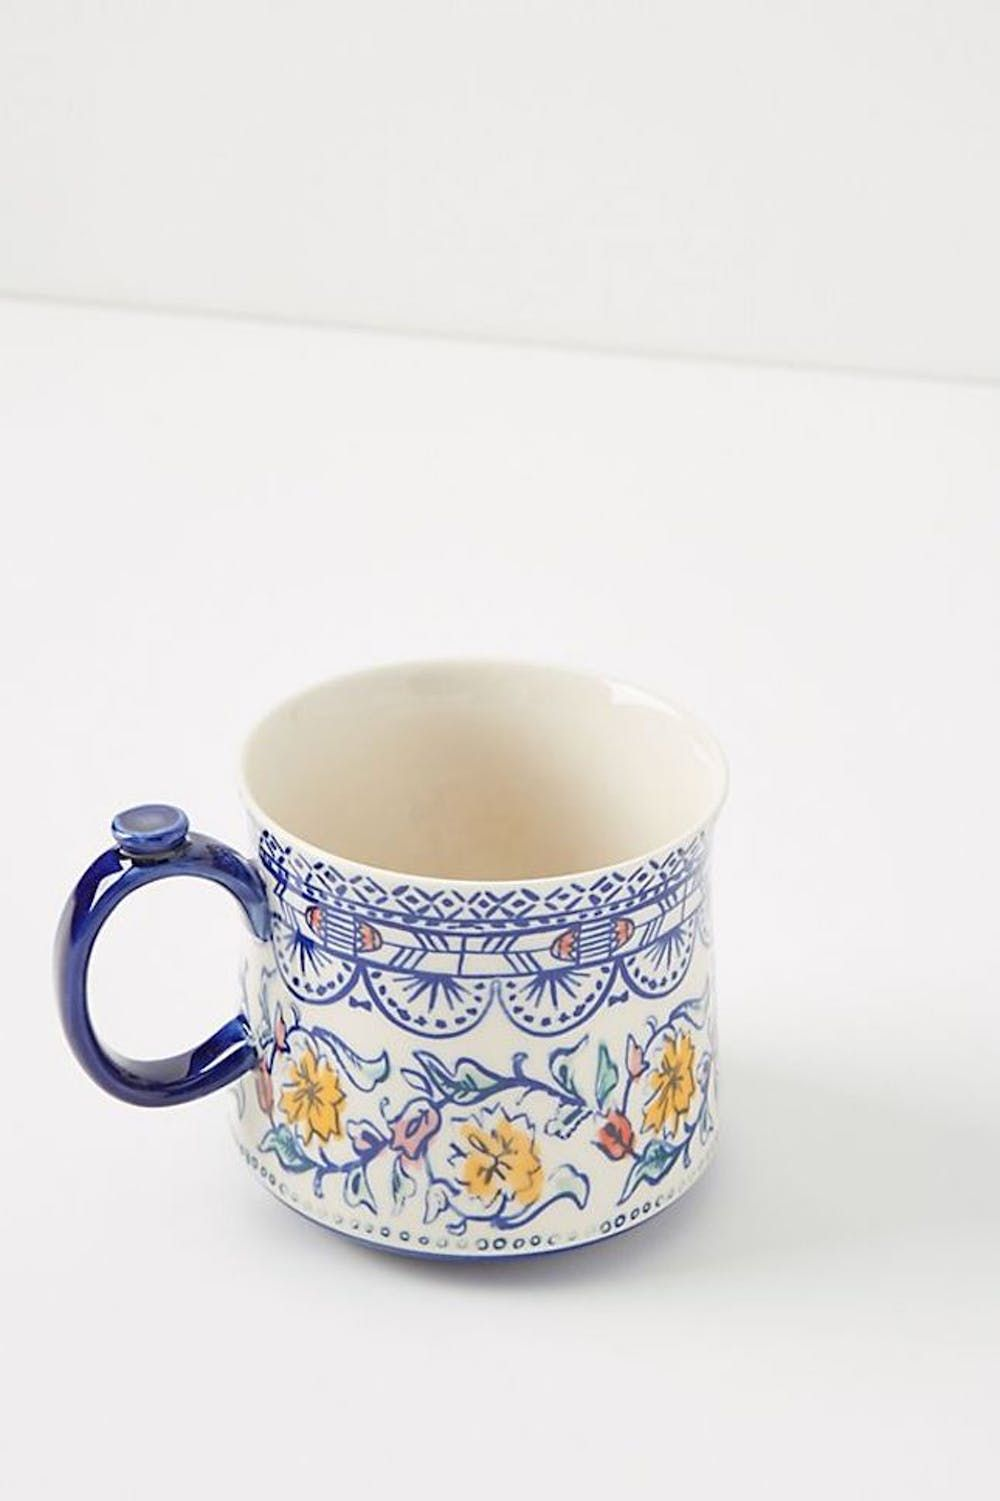 Anthropologie Luann Mug and other Easter basket goodies for adults.